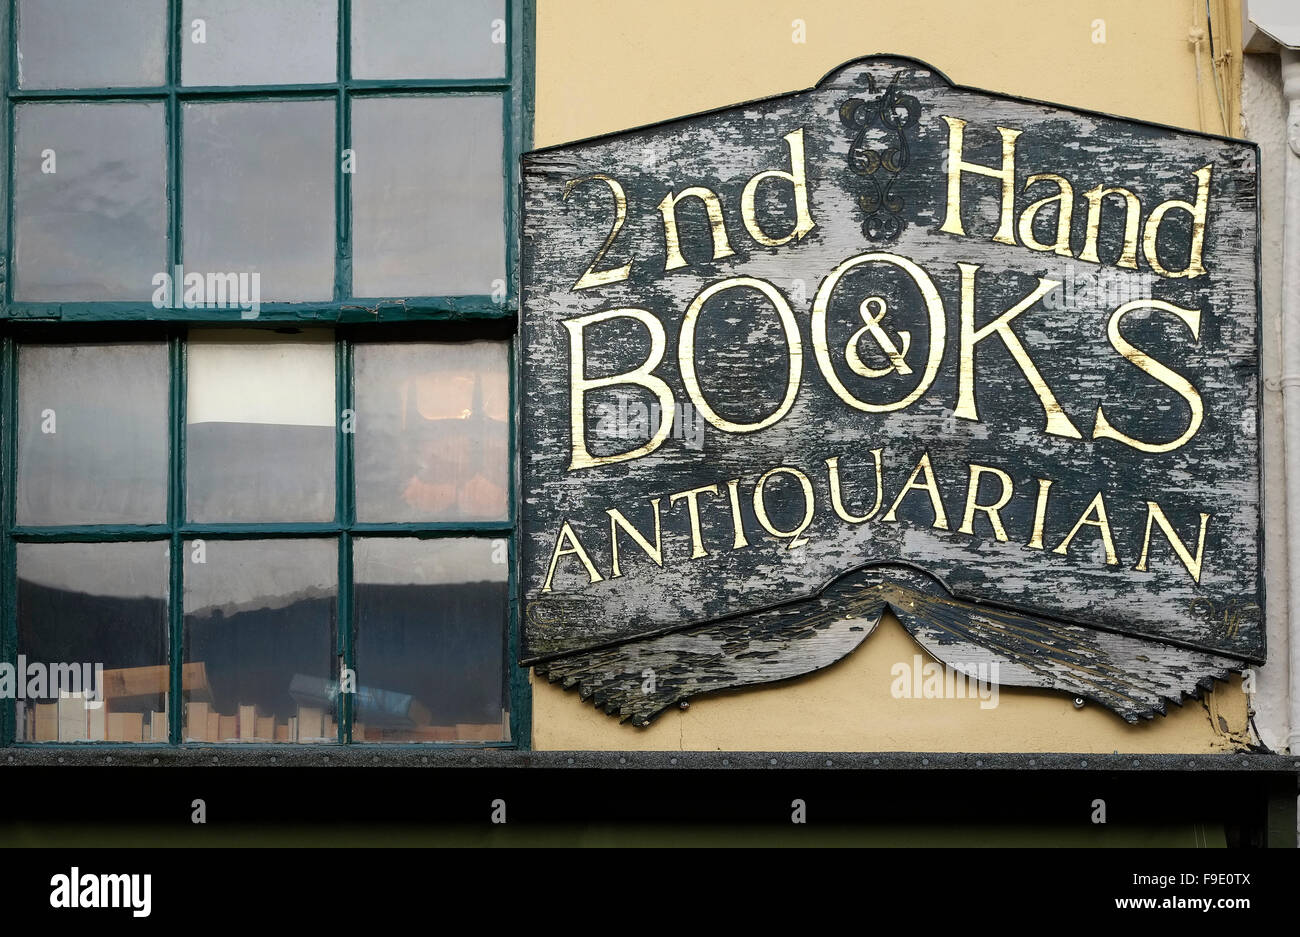 2nd hand books and antiquarian bookseller shop - Stock Image